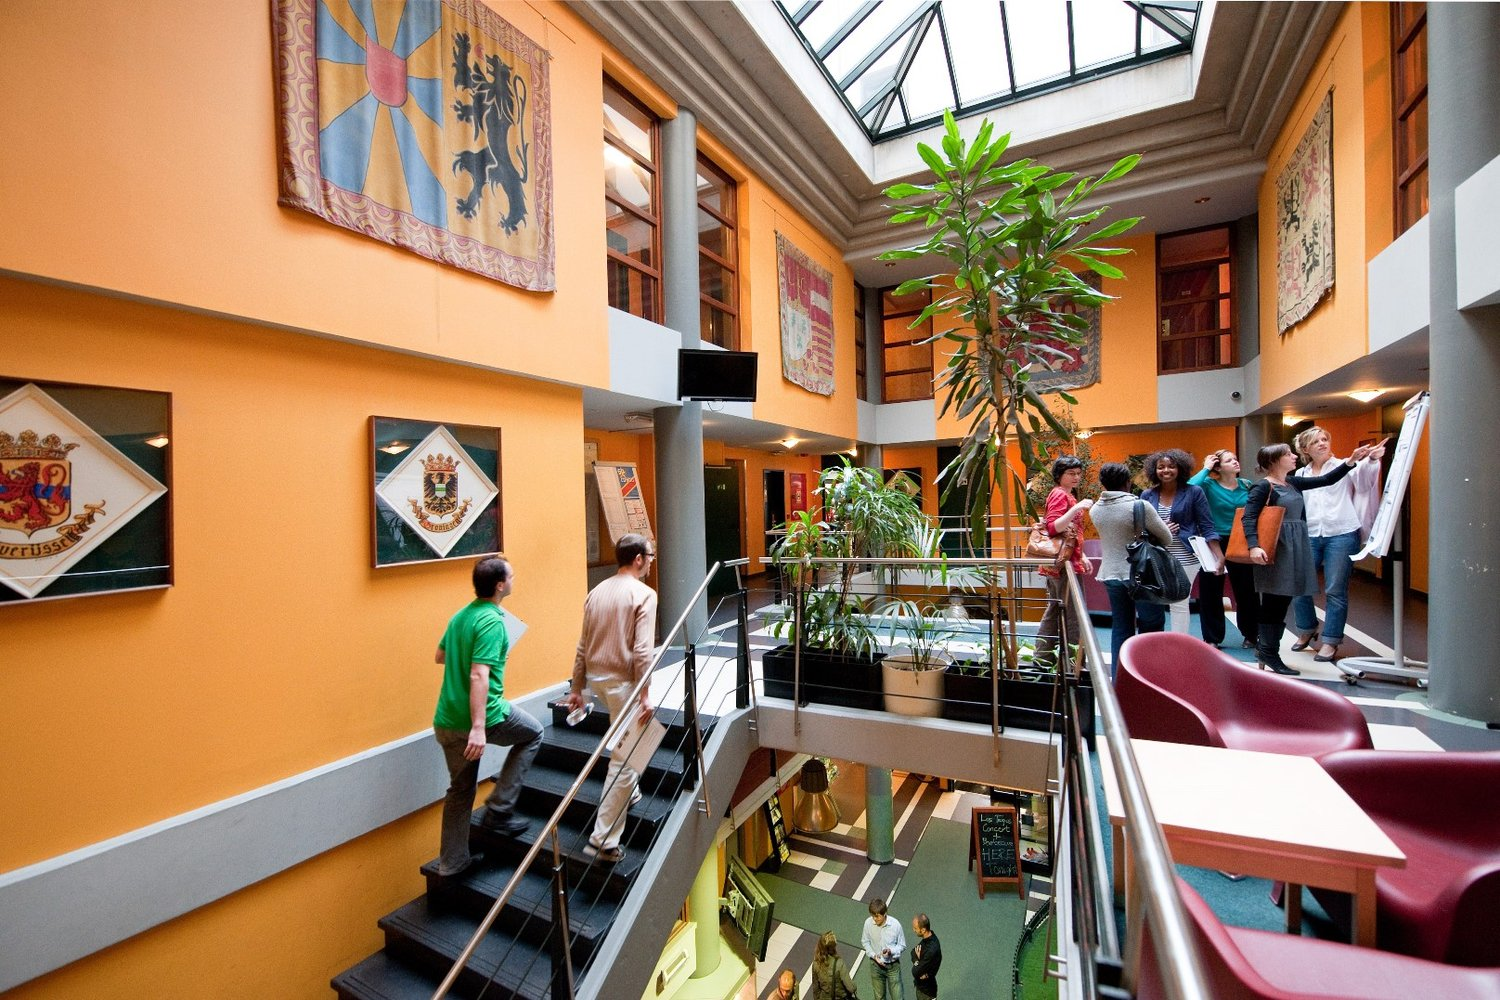 Sleep Well Youth Hostel Brussels Belgium Reviews